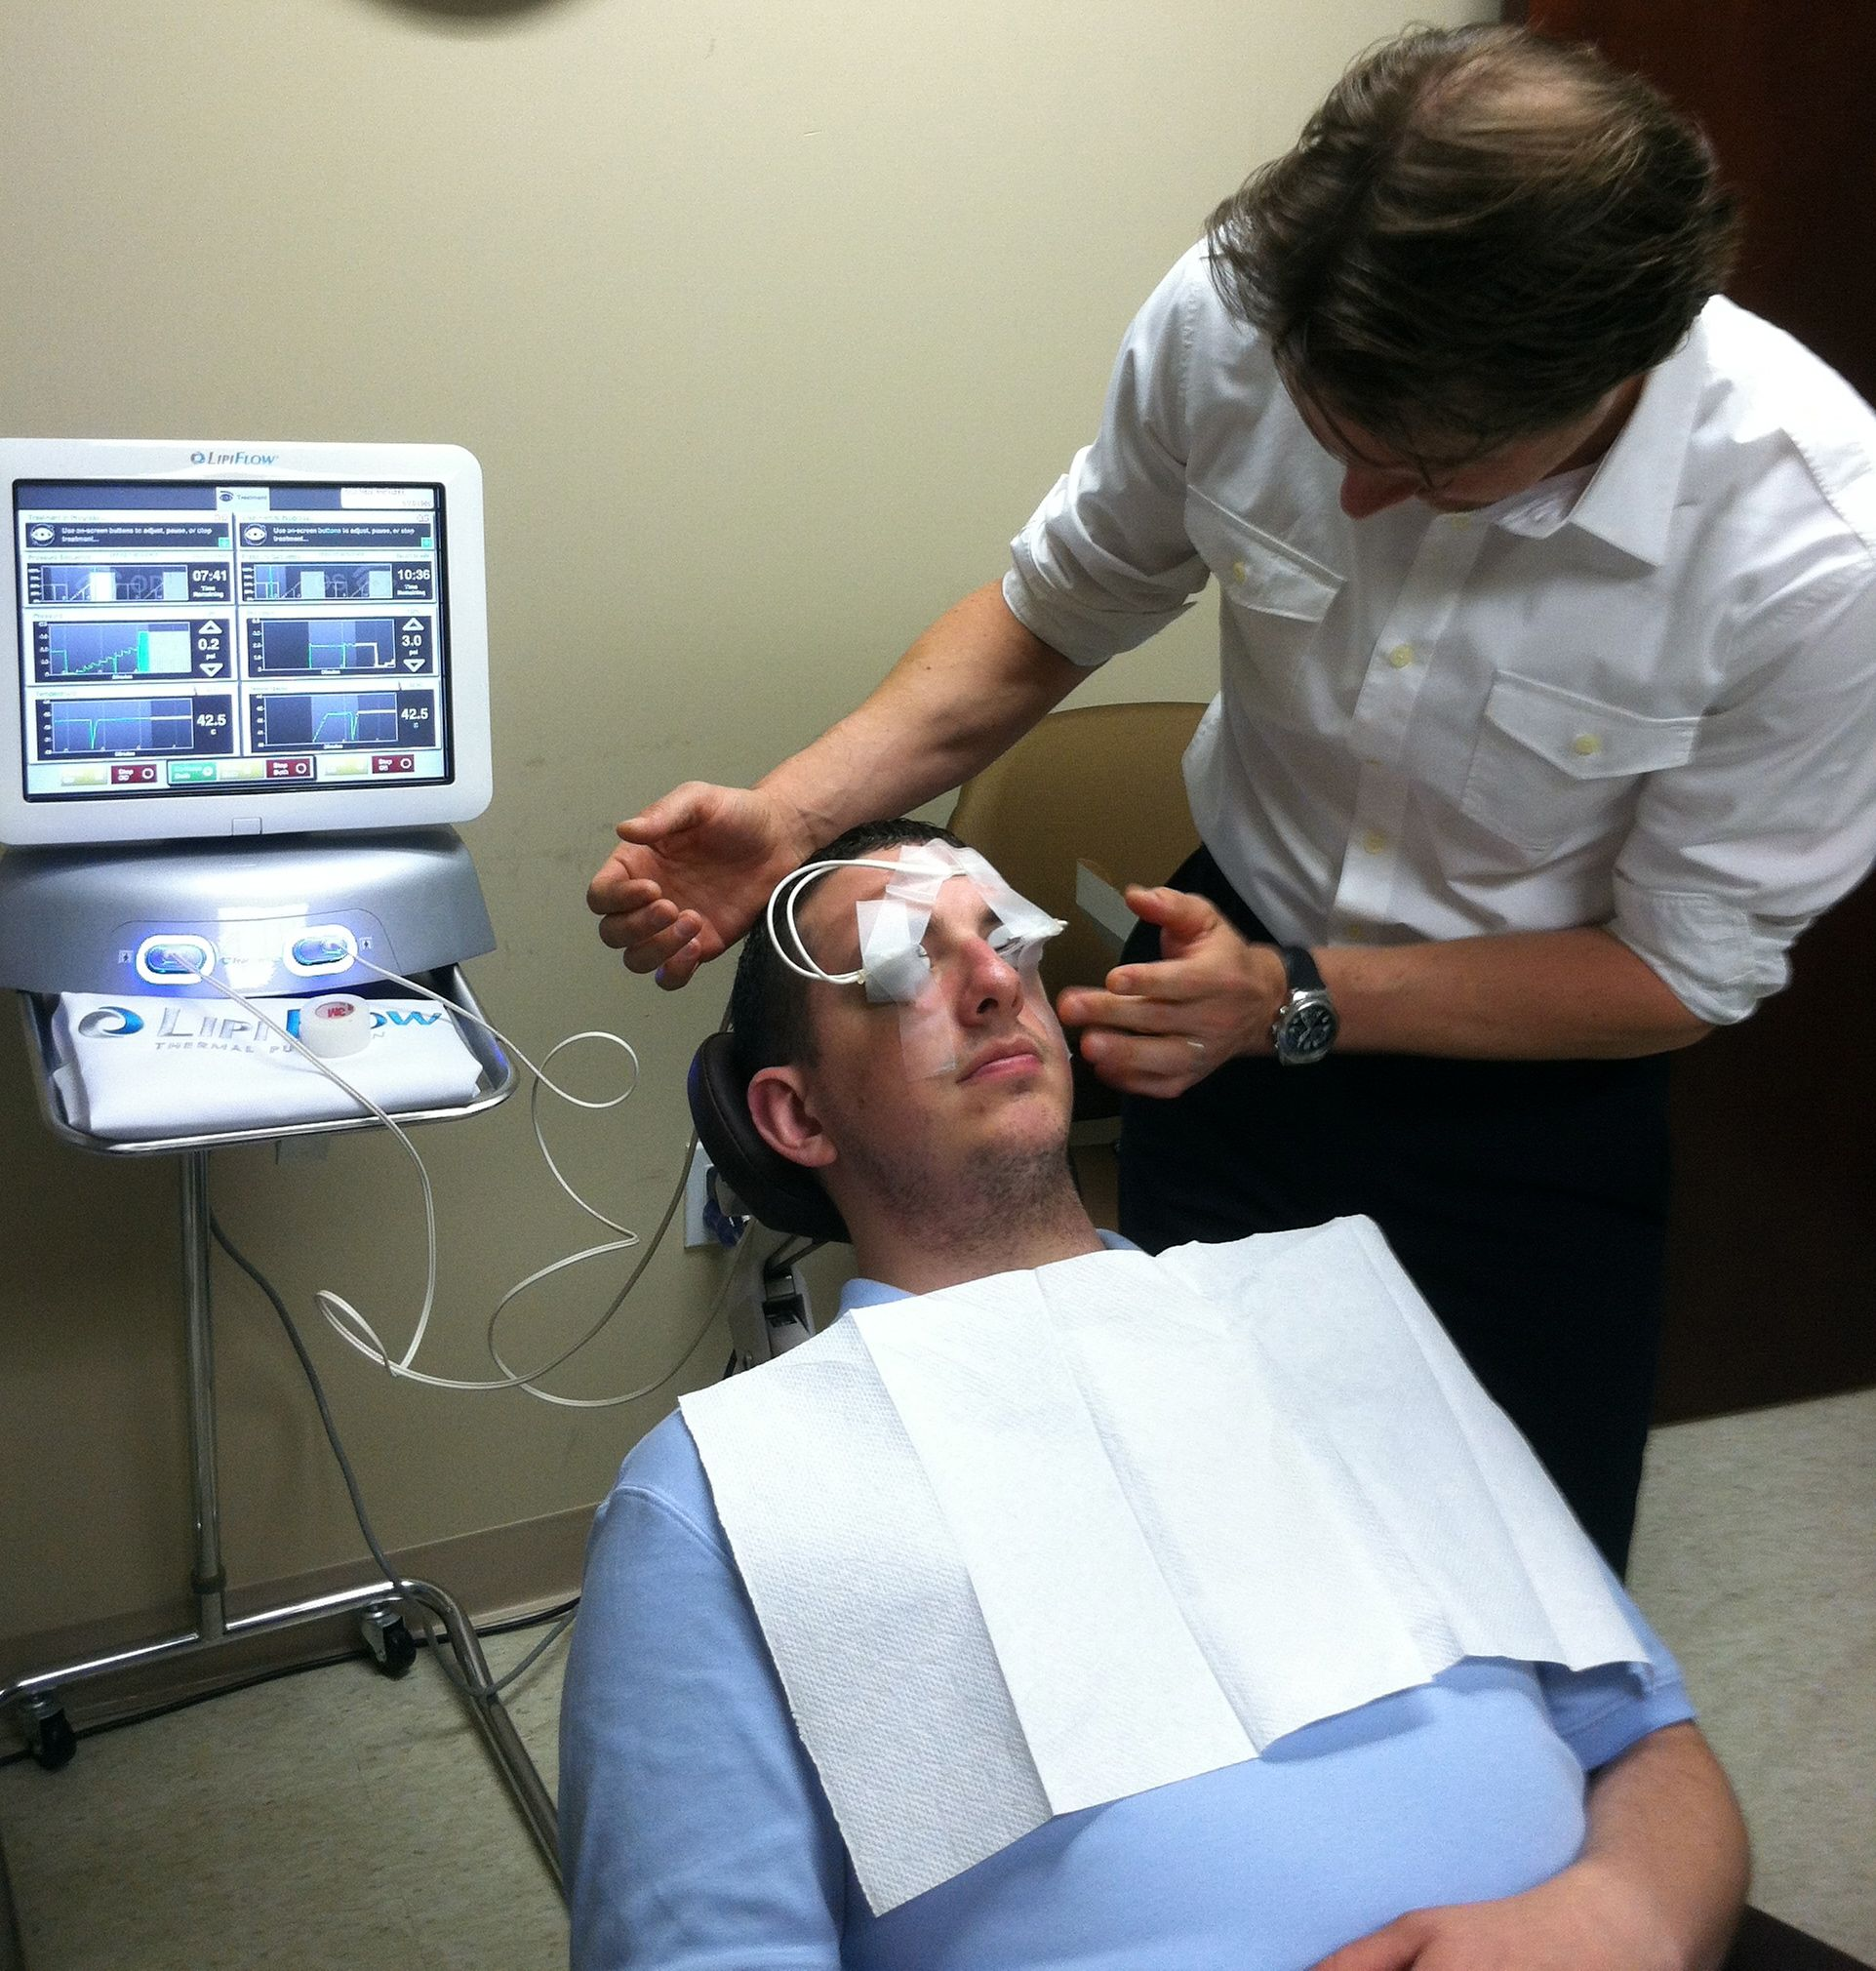 ophthalmic consultants of long island introduces new breakthrough media news center